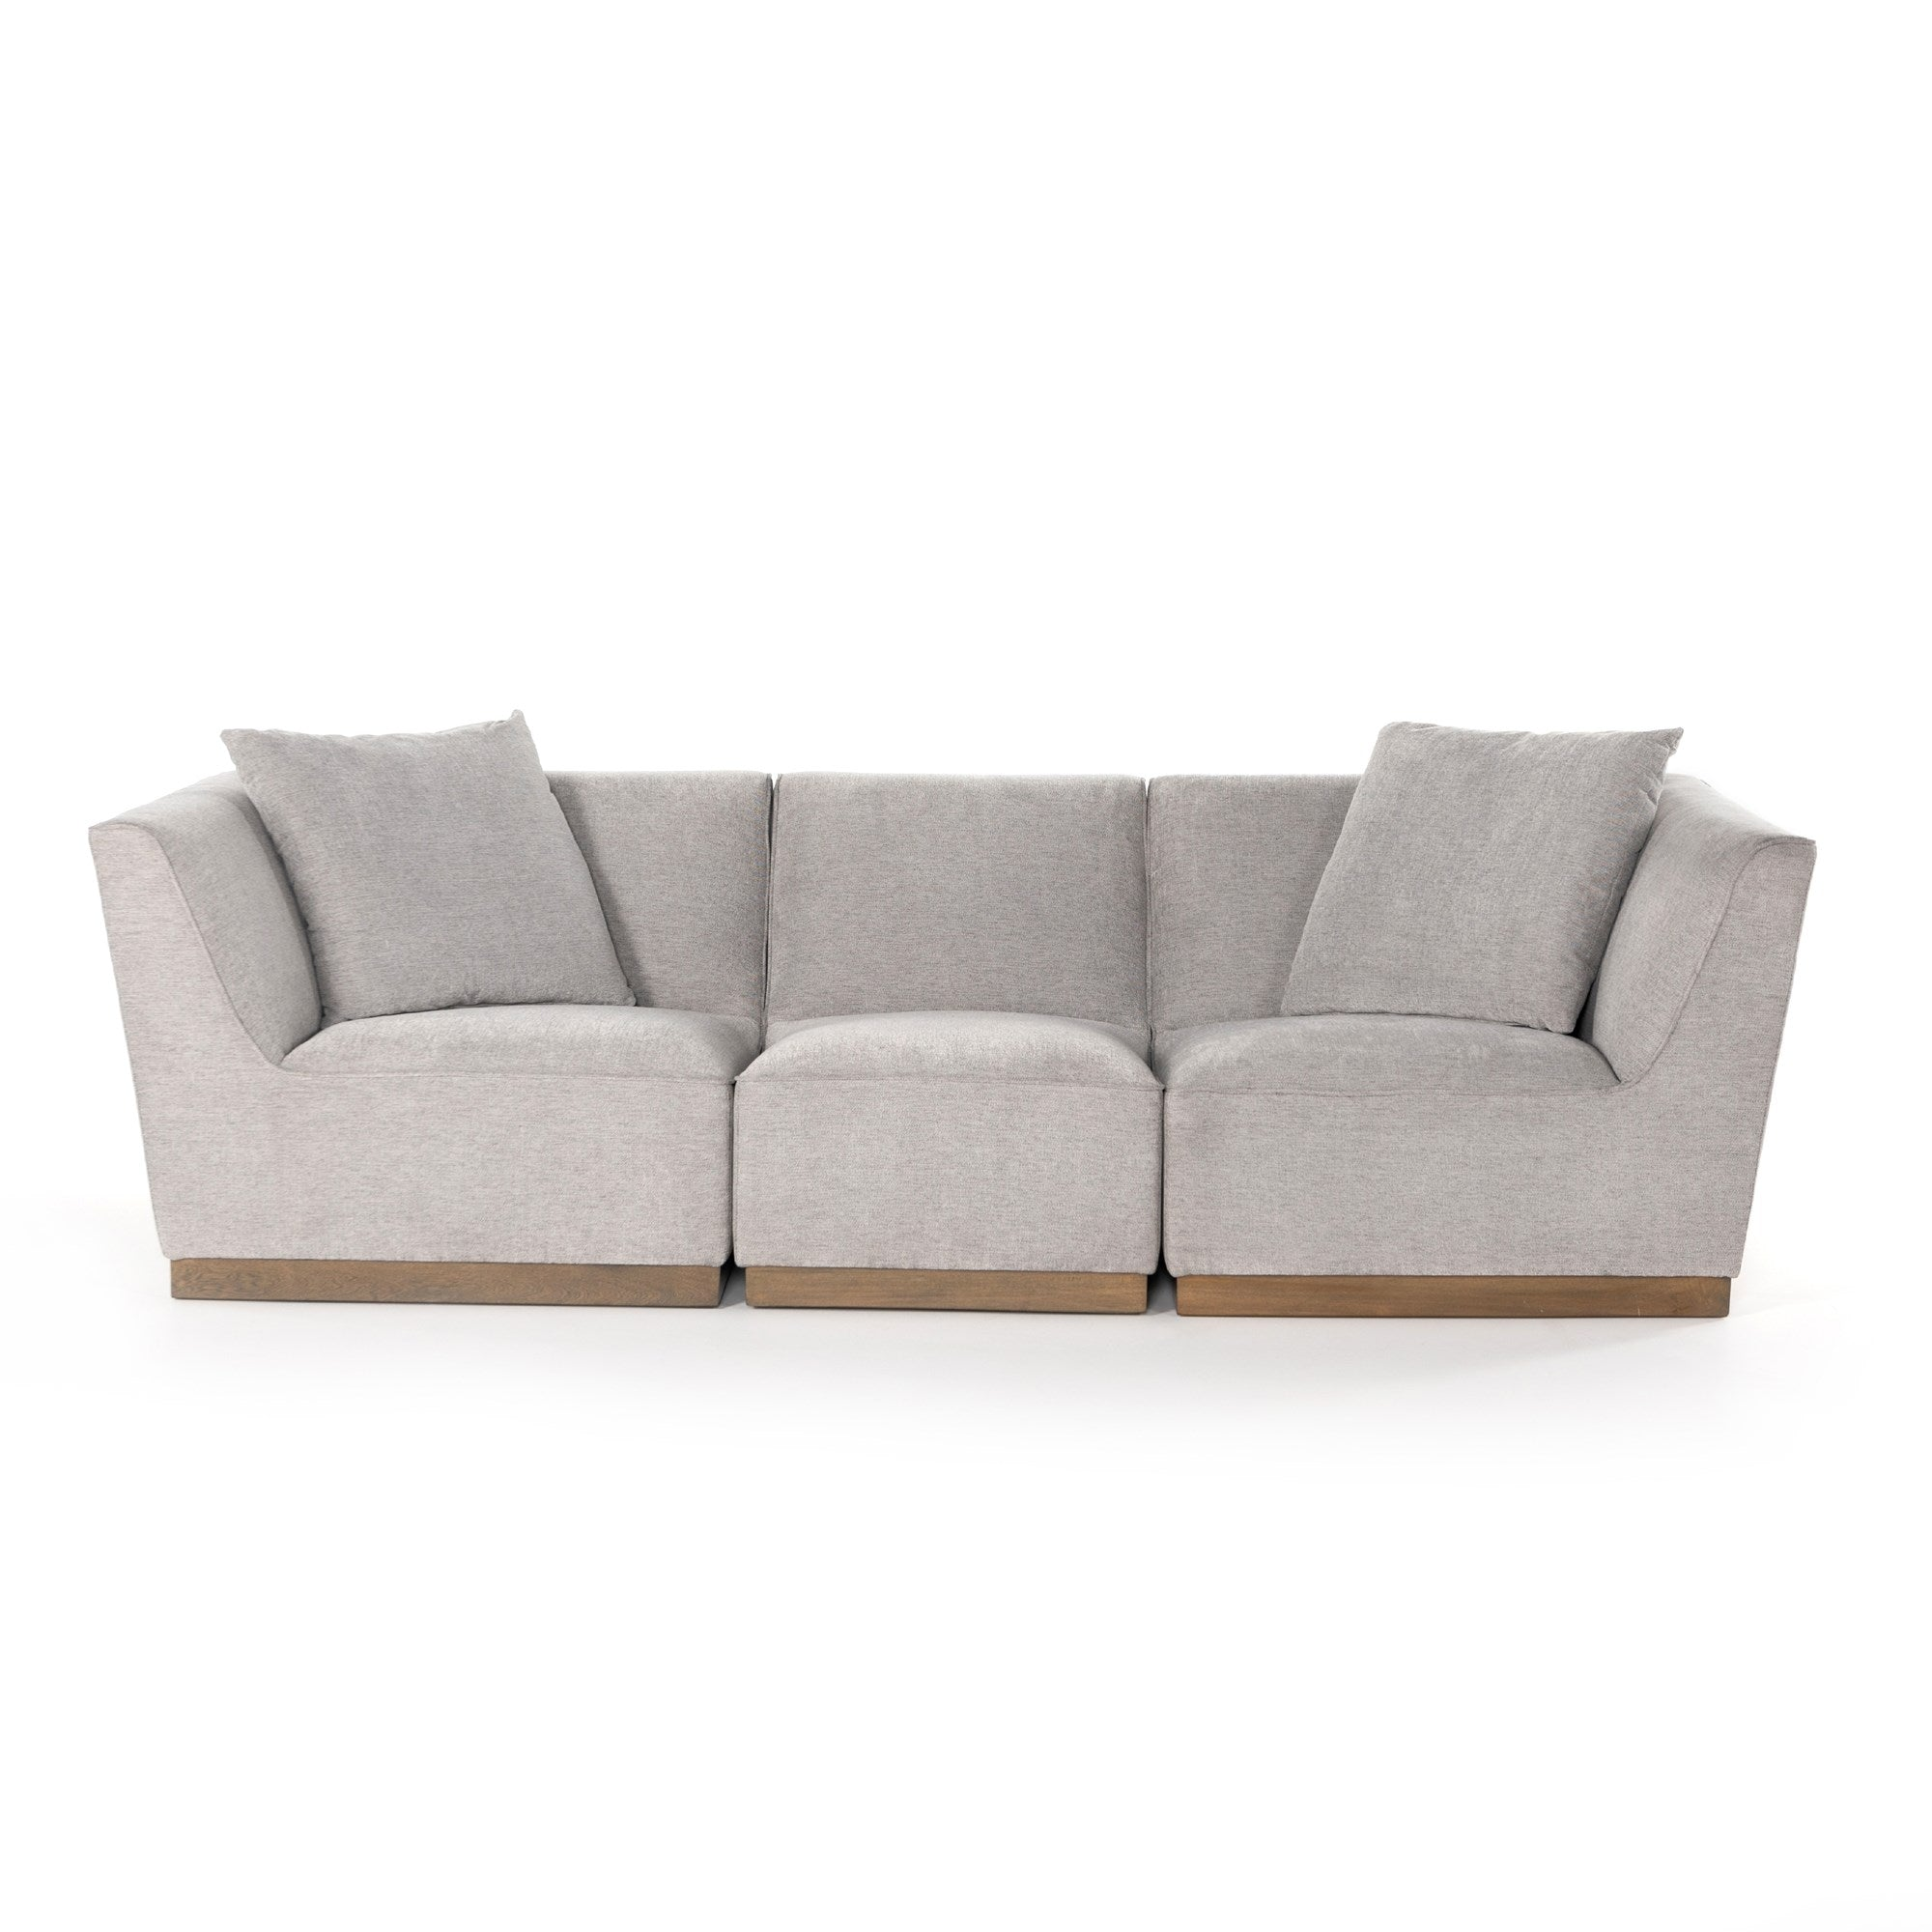 Gentry 3 Piece Sectional